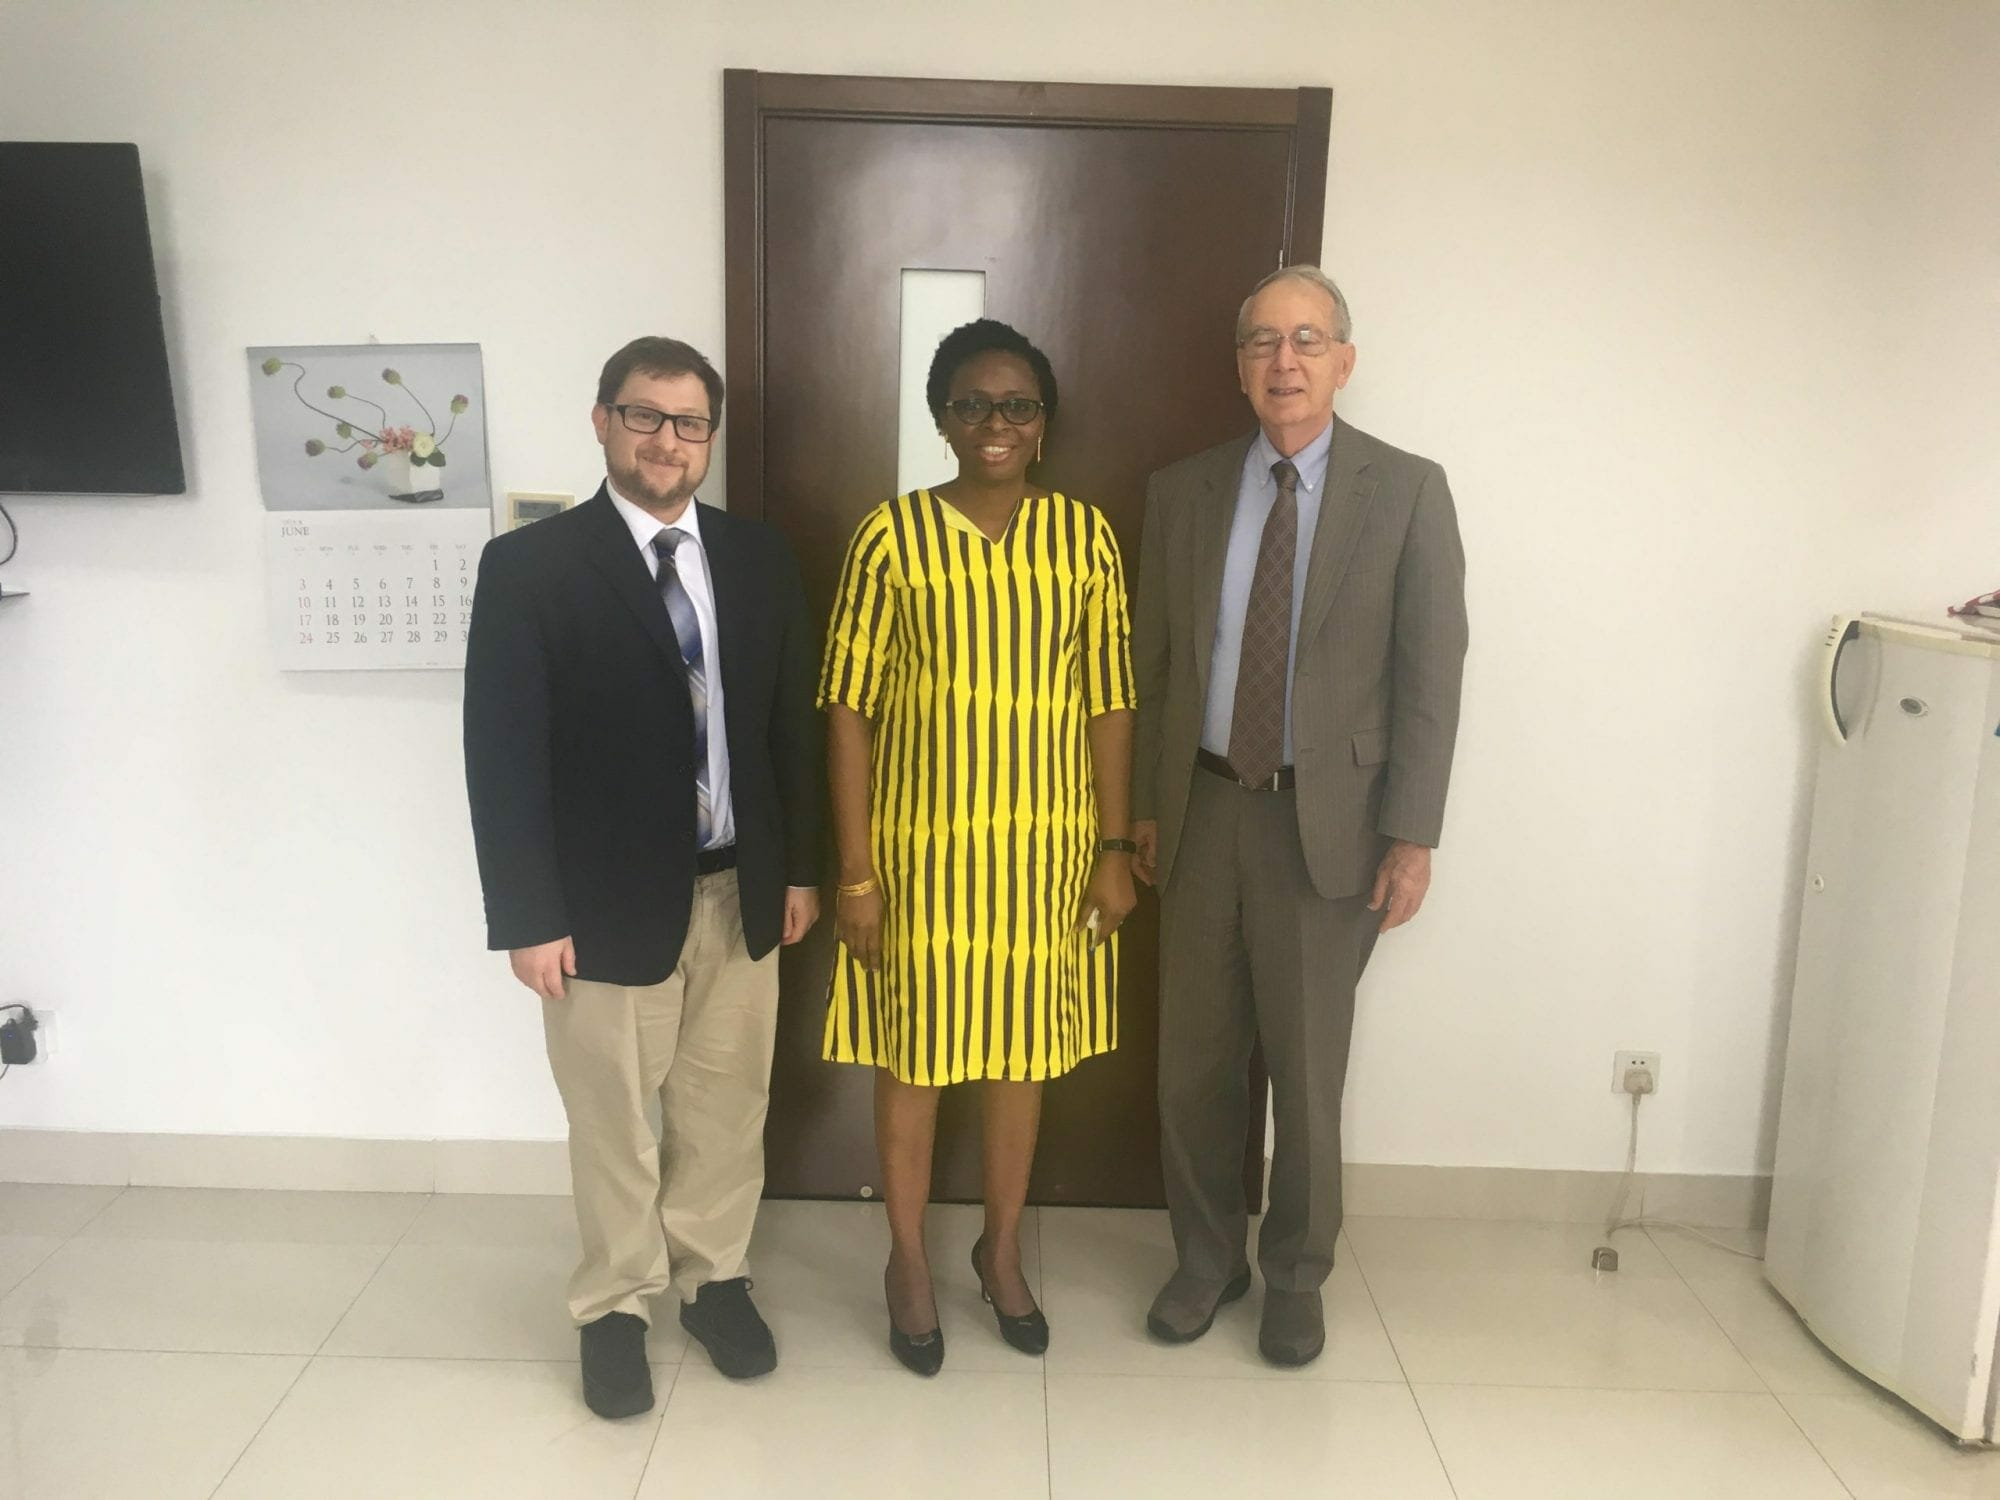 Shinn and Eisenman with Genevieve Apaloo Director for Asian Affairs Ghanaian Ministry of Foreign Affairs